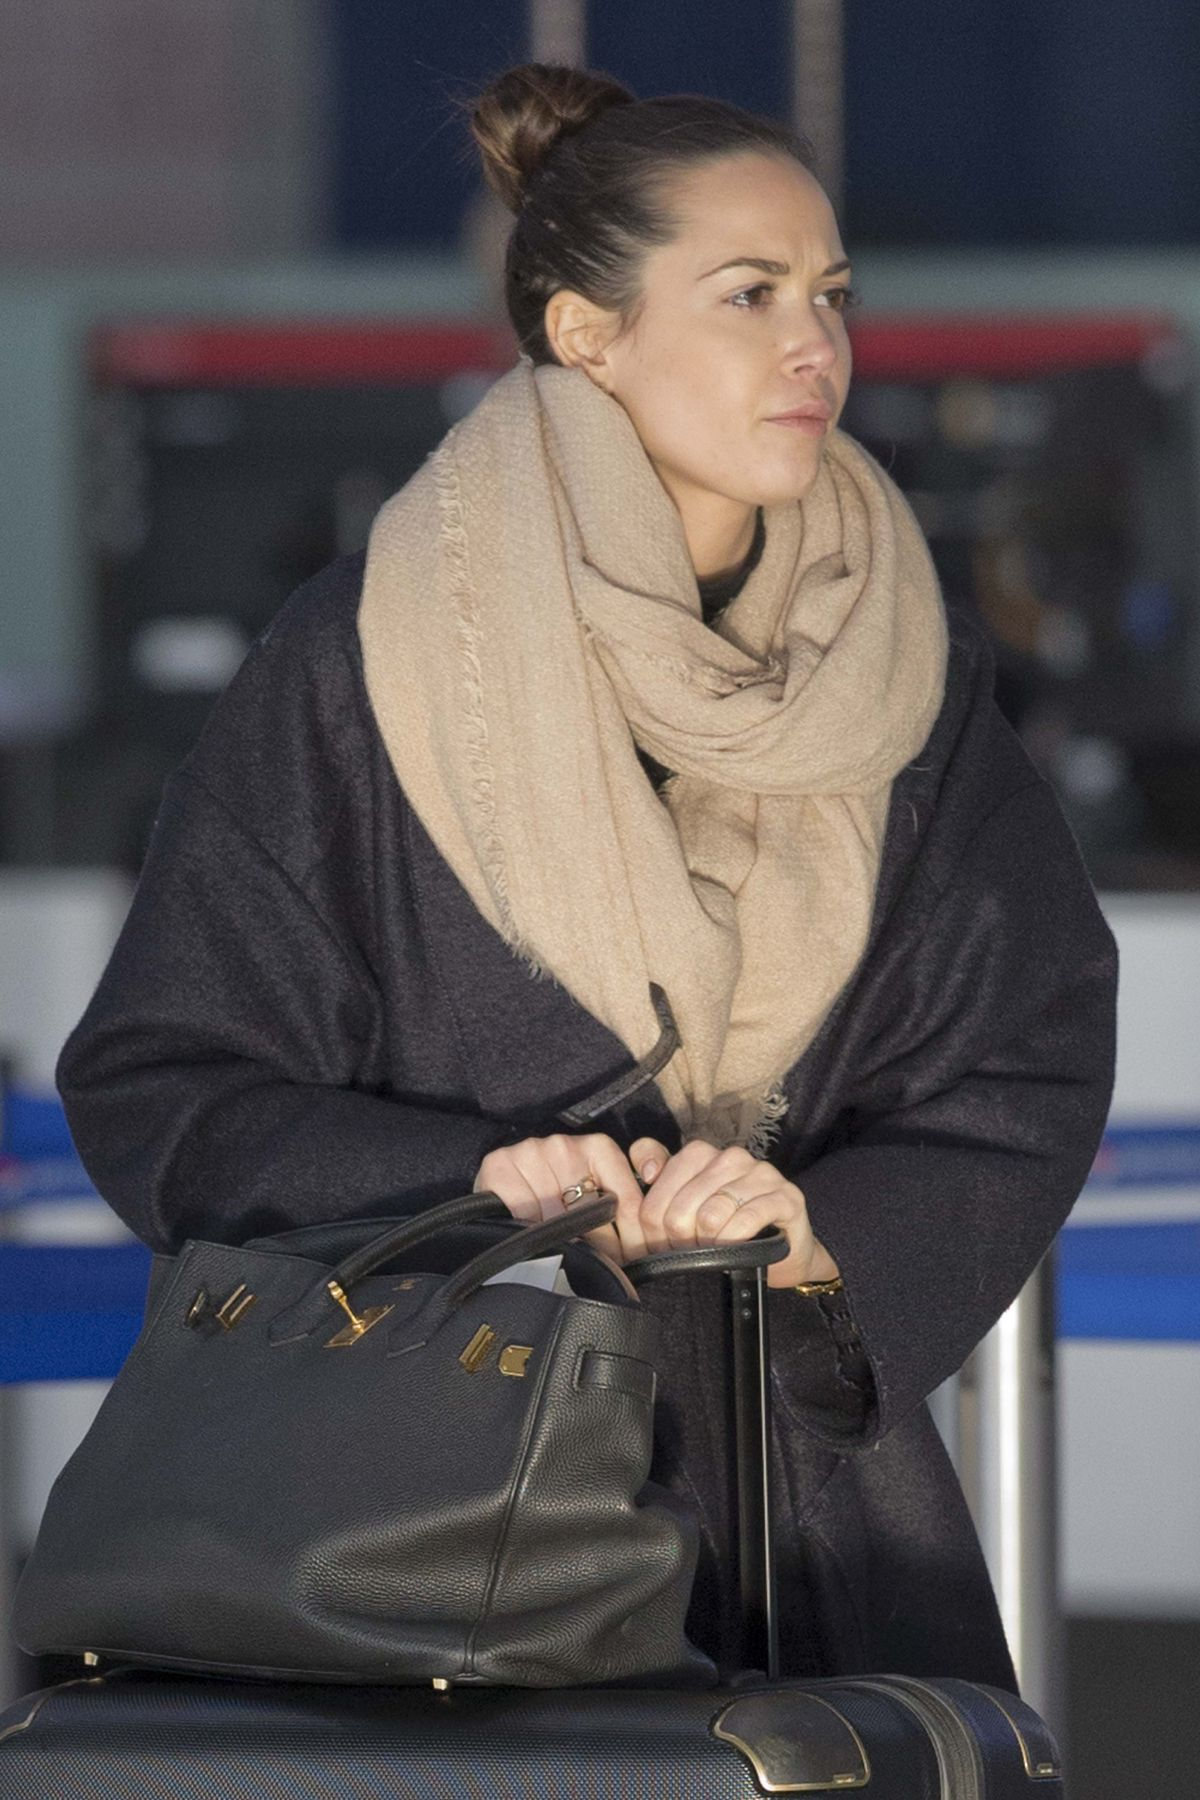 MANDY CAPRISTO at Heathrow Airport in London 01/15/2016